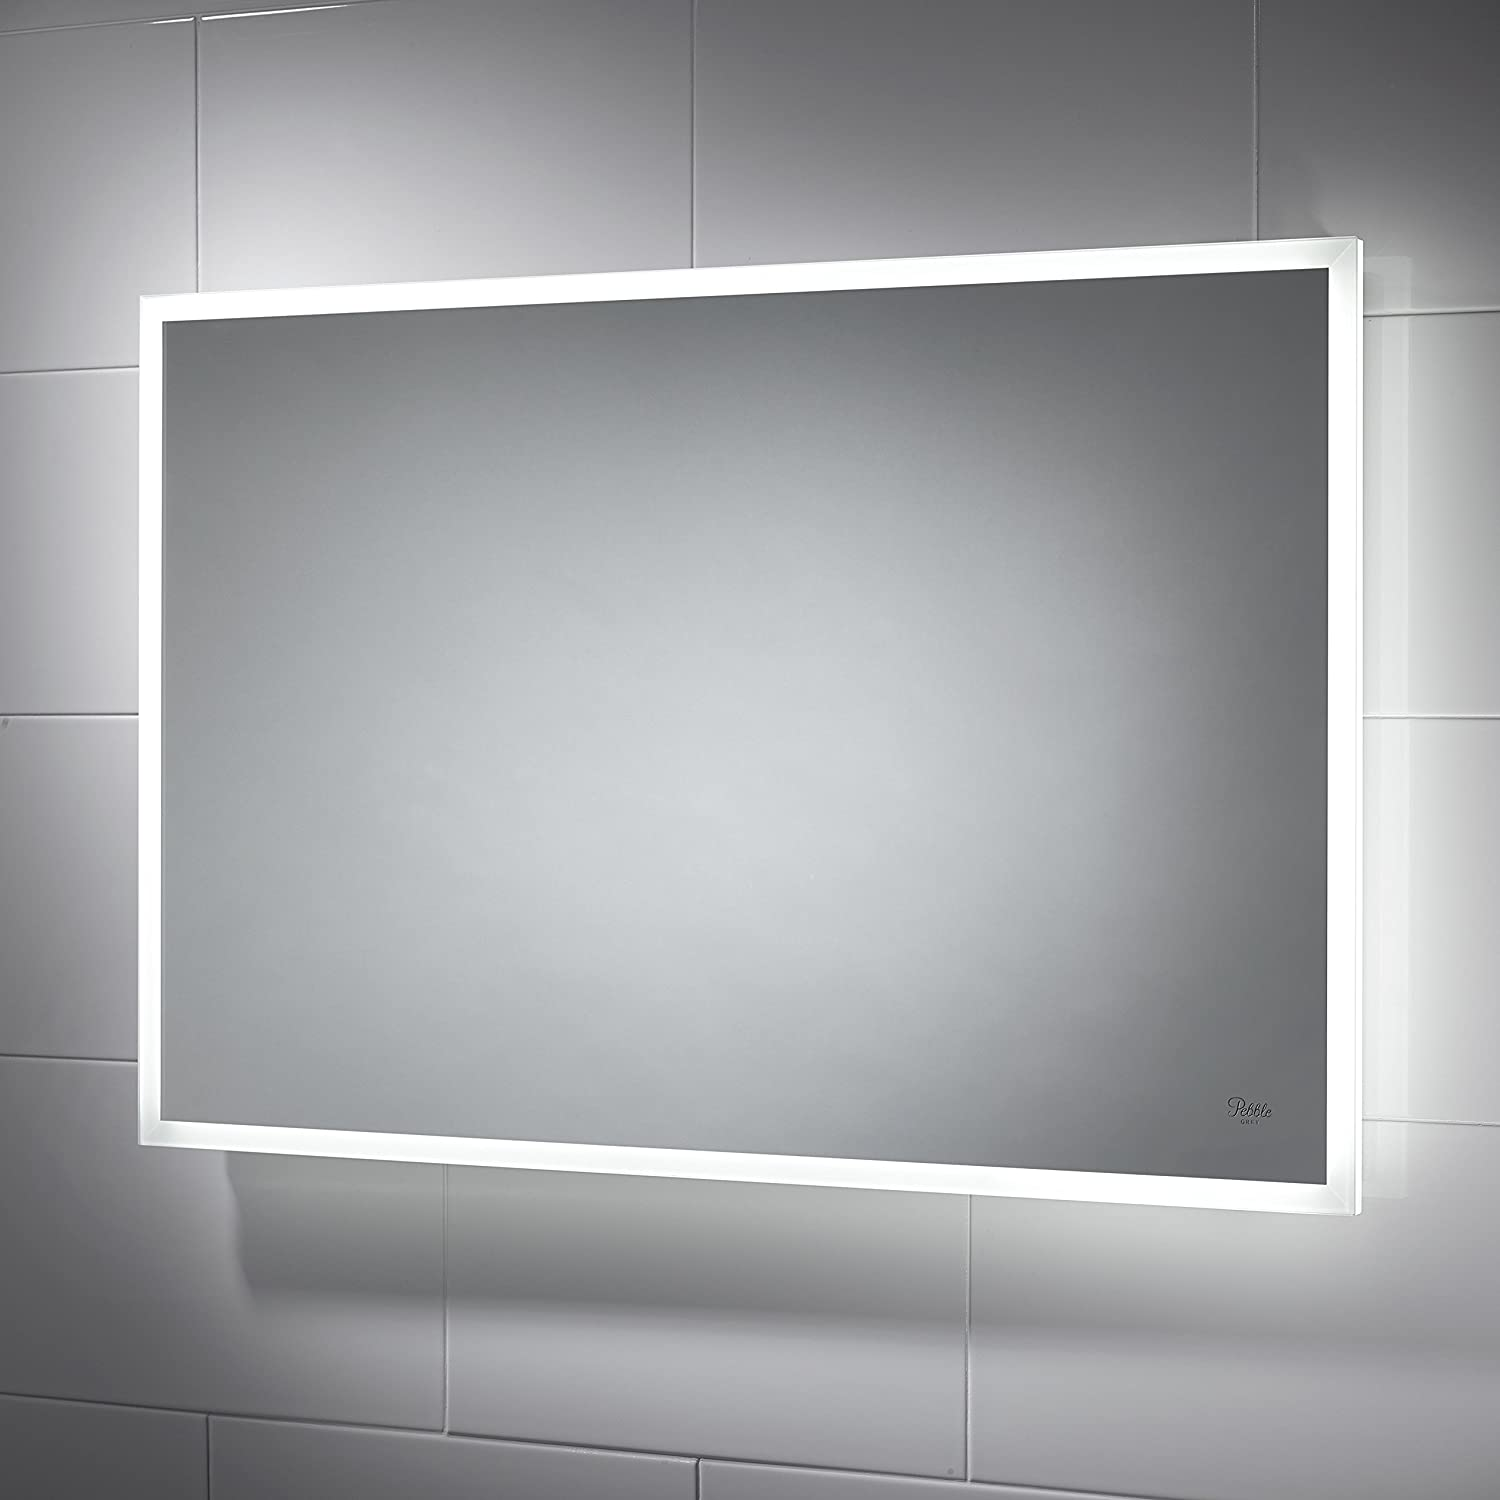 Taron LED Illuminated Bathroom Mirror 900mmW X 600mmH With Sensor Switch And Demister Pad Amazoncouk Kitchen Home